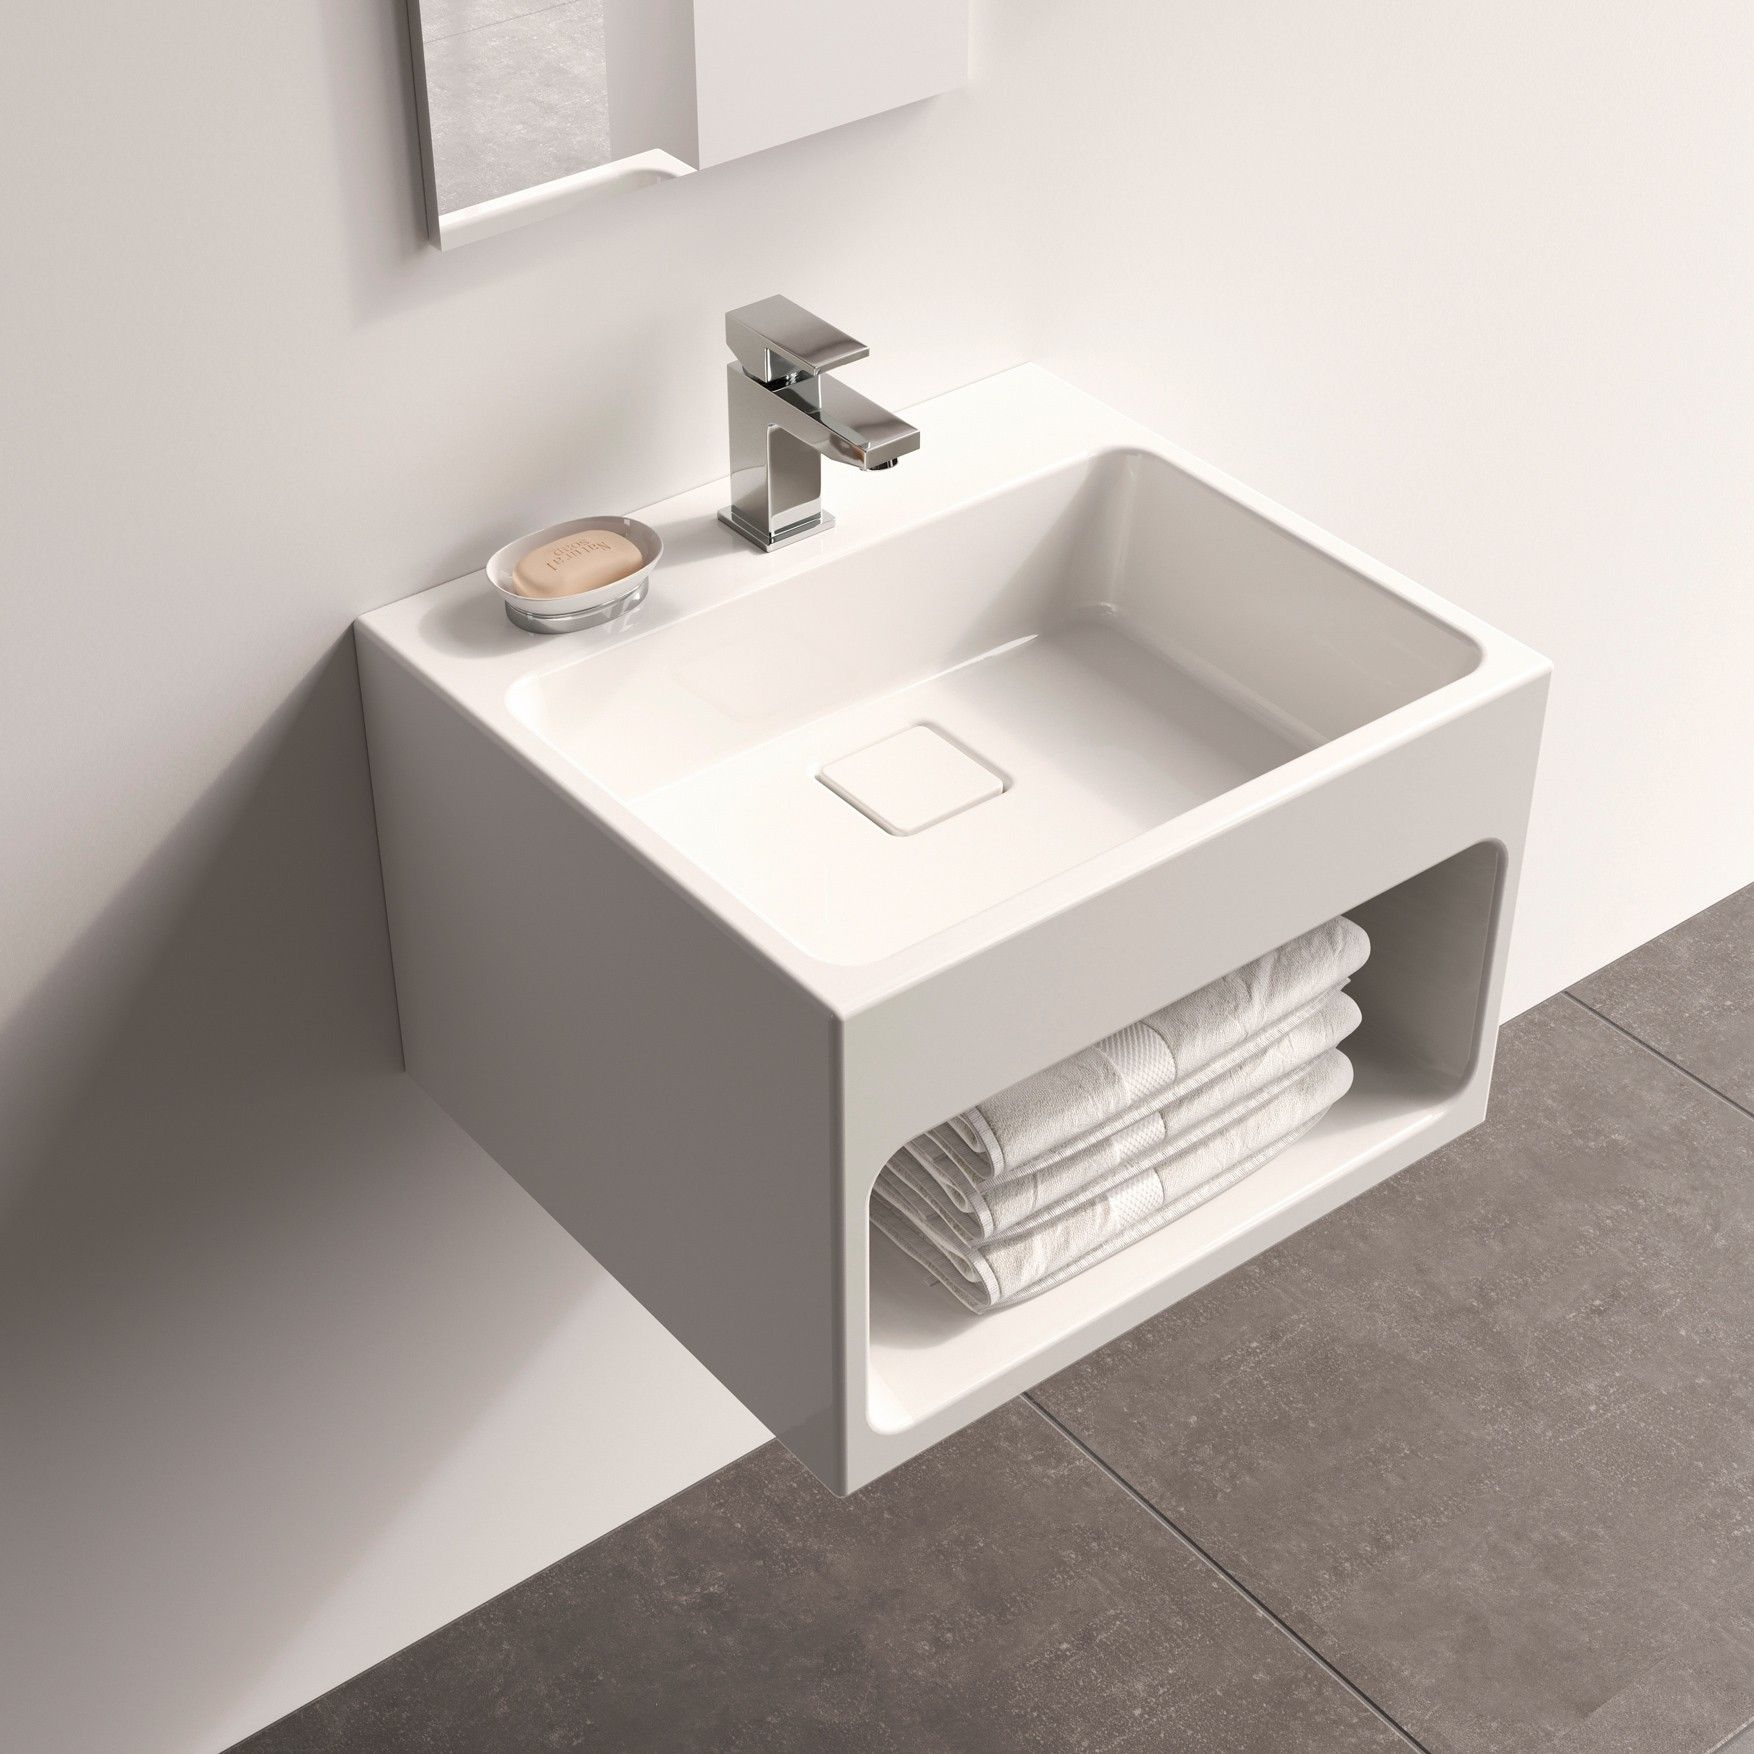 Fusion Gloss White 450 Wall Hung Vanity Unit Wall Hung Vanity Washbasin Design Vanity Units